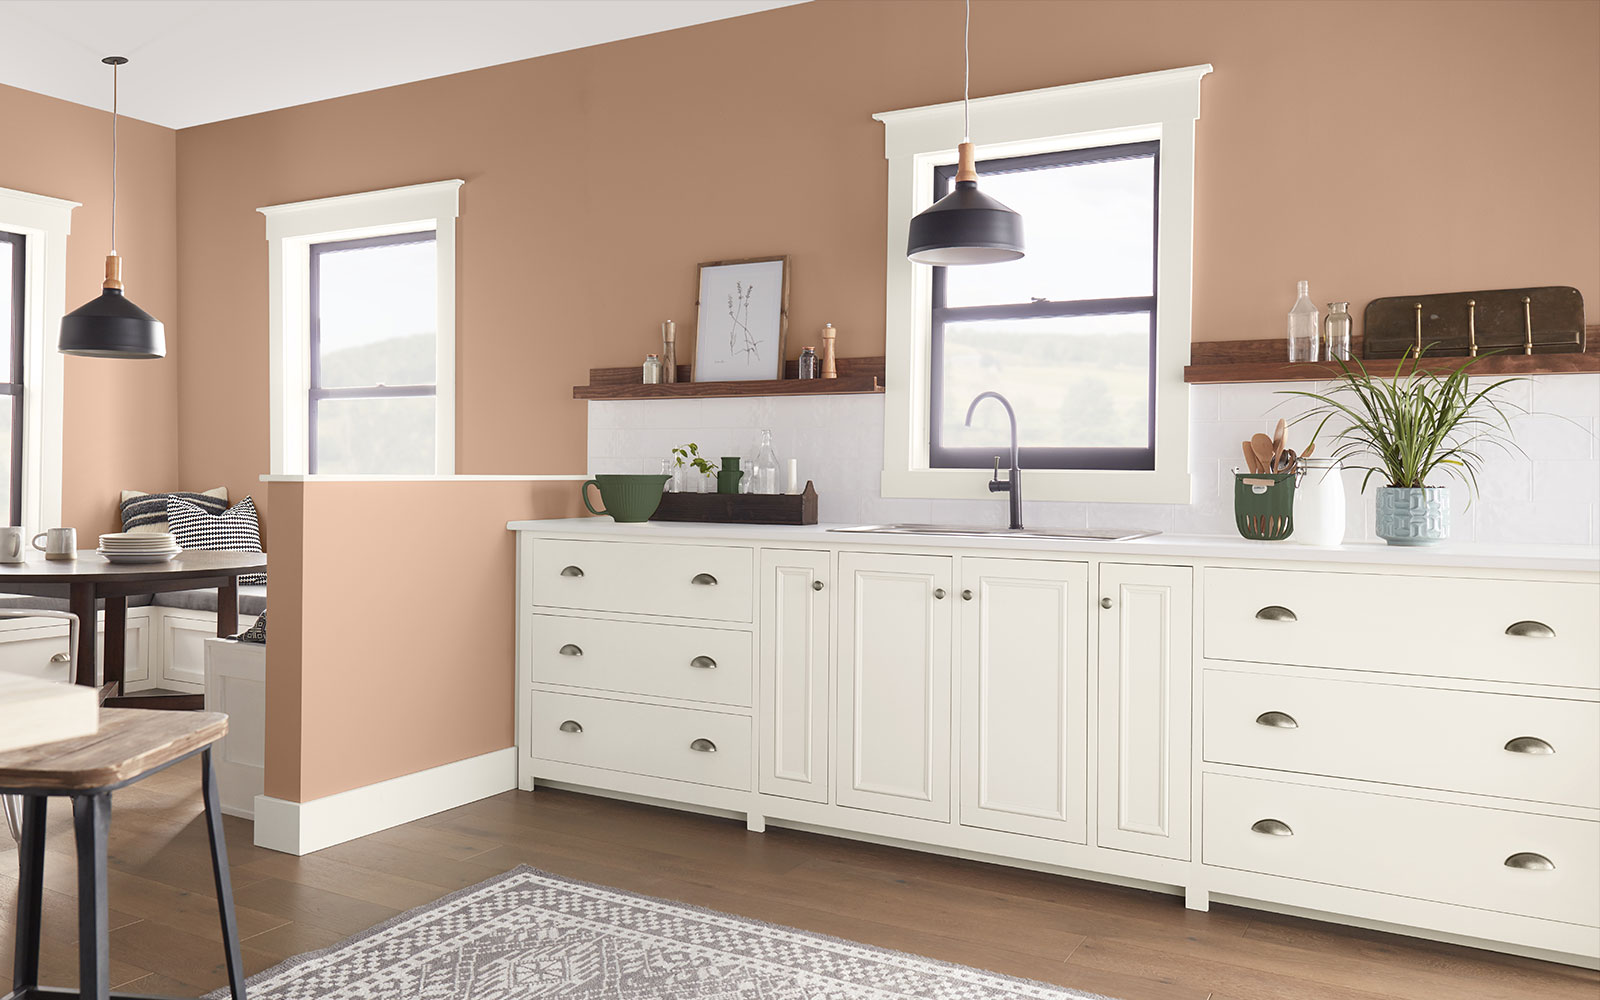 A kitchen image with three color swatches sitting beside it. The image displays the three colors: a dusty orange hue is used for the wall, a creamy white hue is used for the cabinets, and a dark green hue represents the plants sitting on the counters.